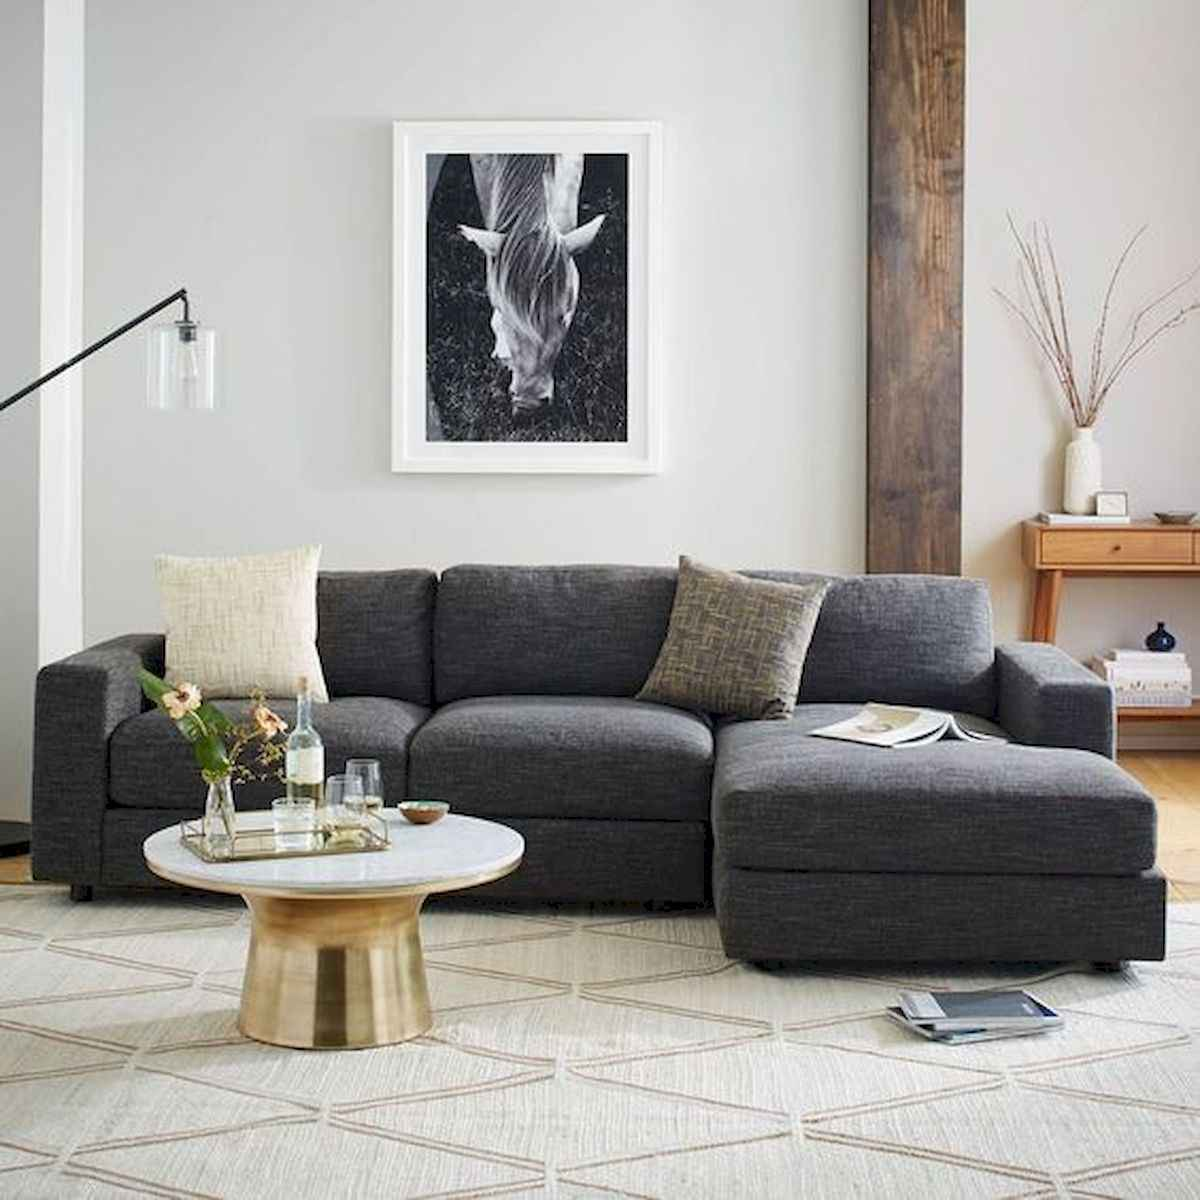 70 Stunning Grey White Black Living Room Decor Ideas And Remodel (19)